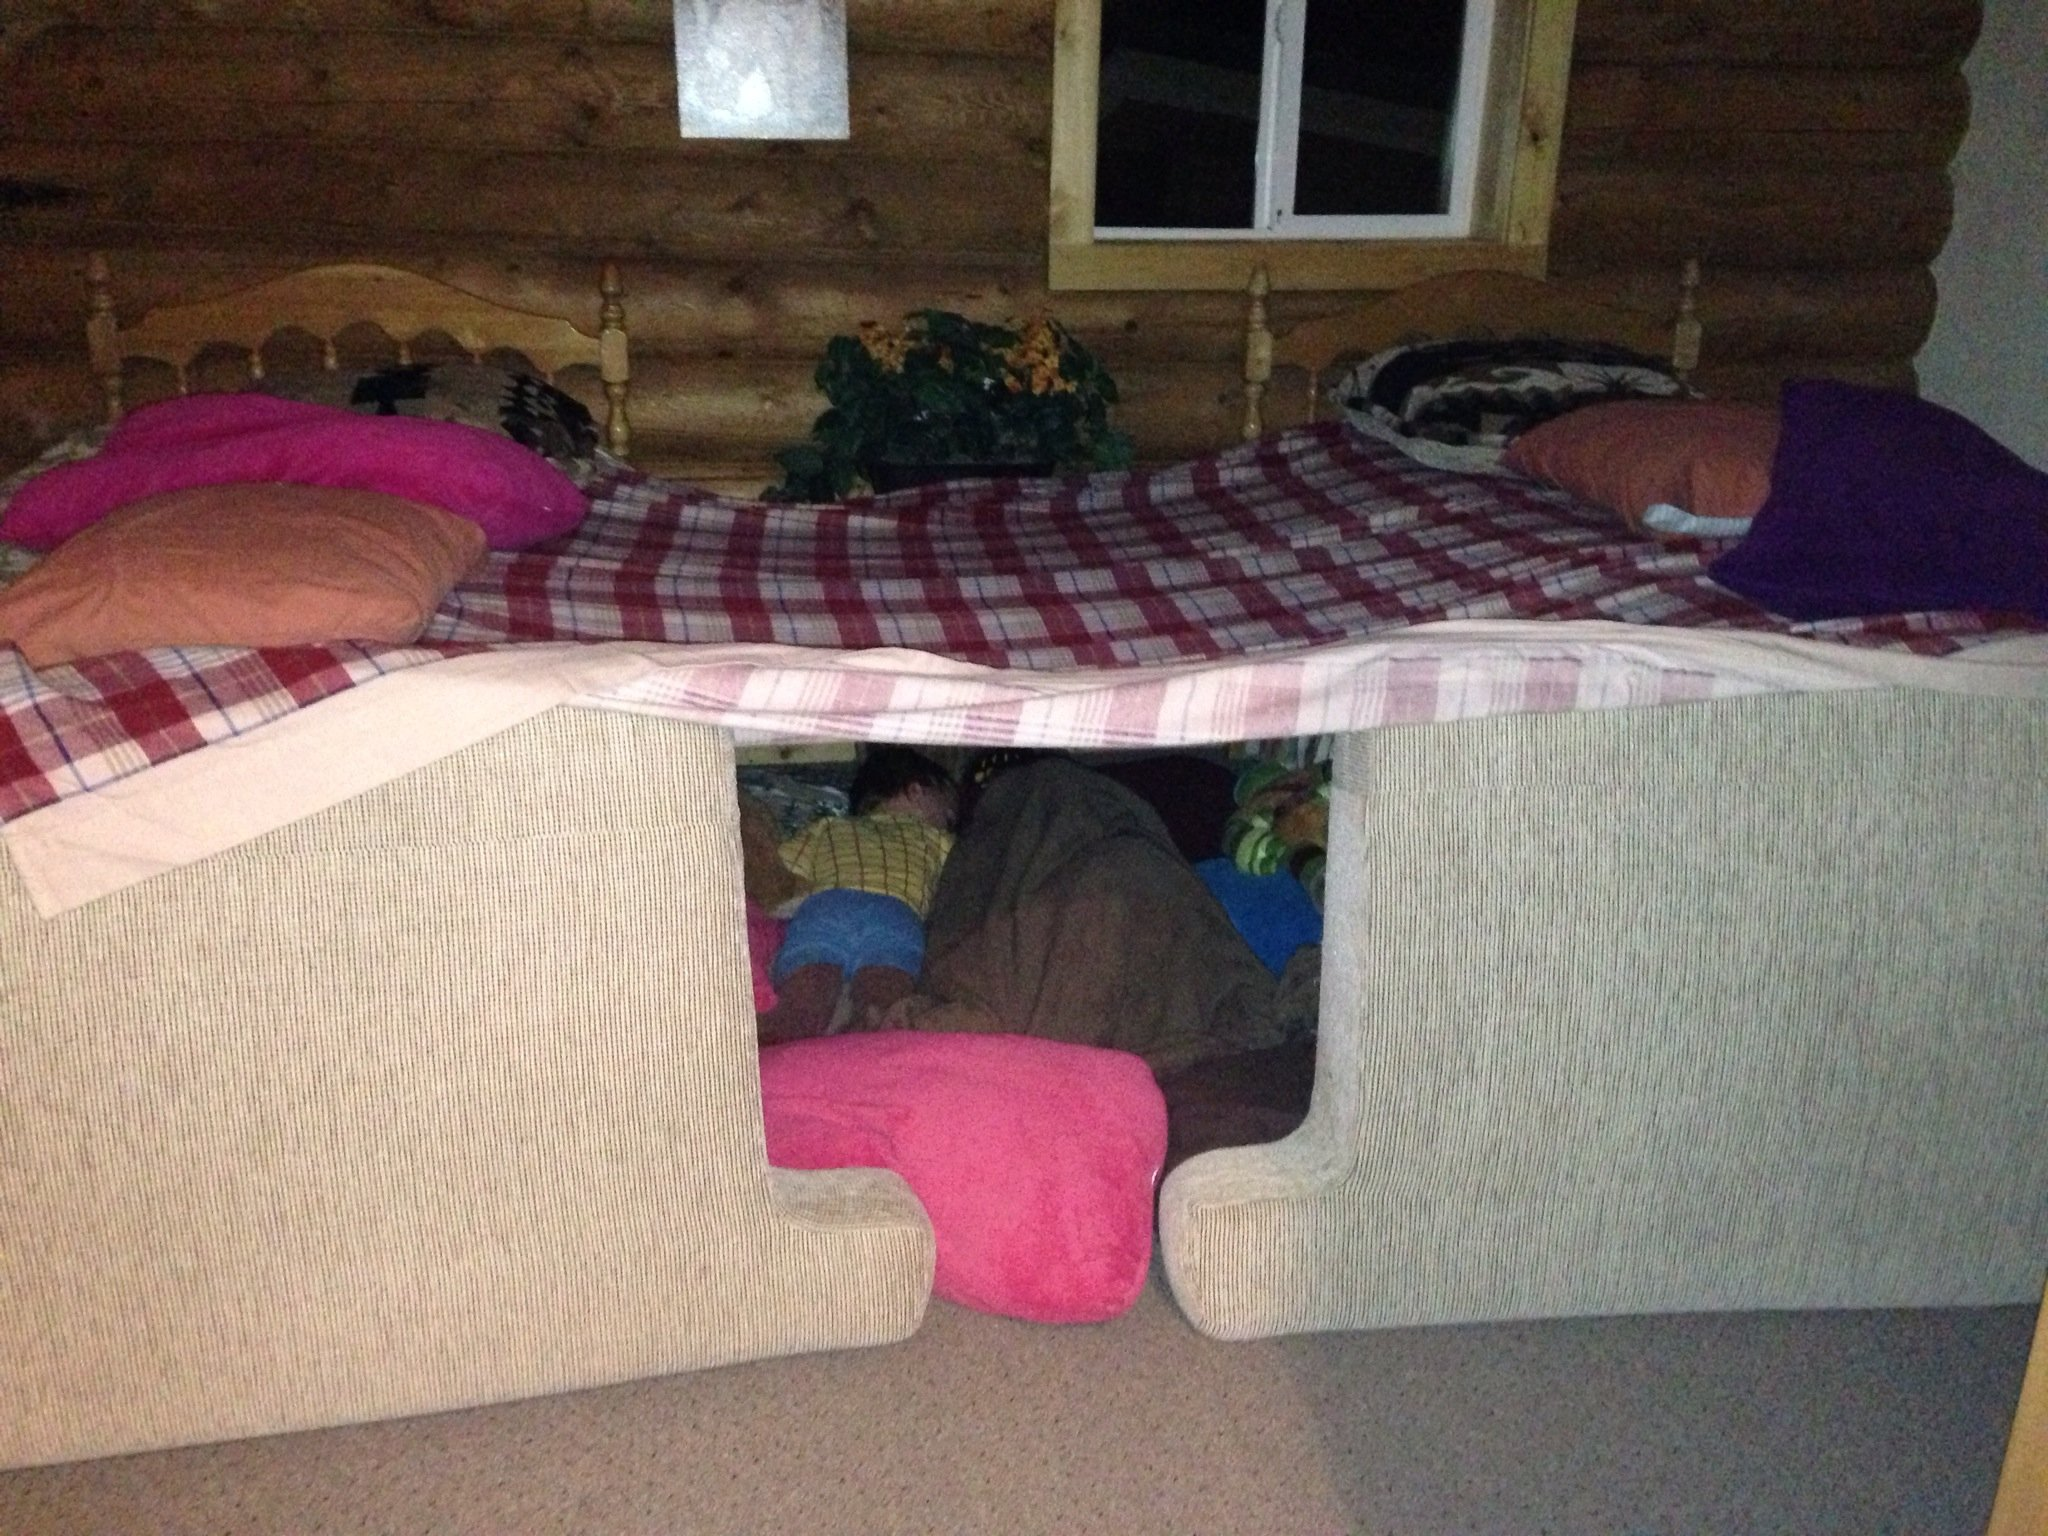 Kids Fort - Learn more at https://heidipowell.net/3085